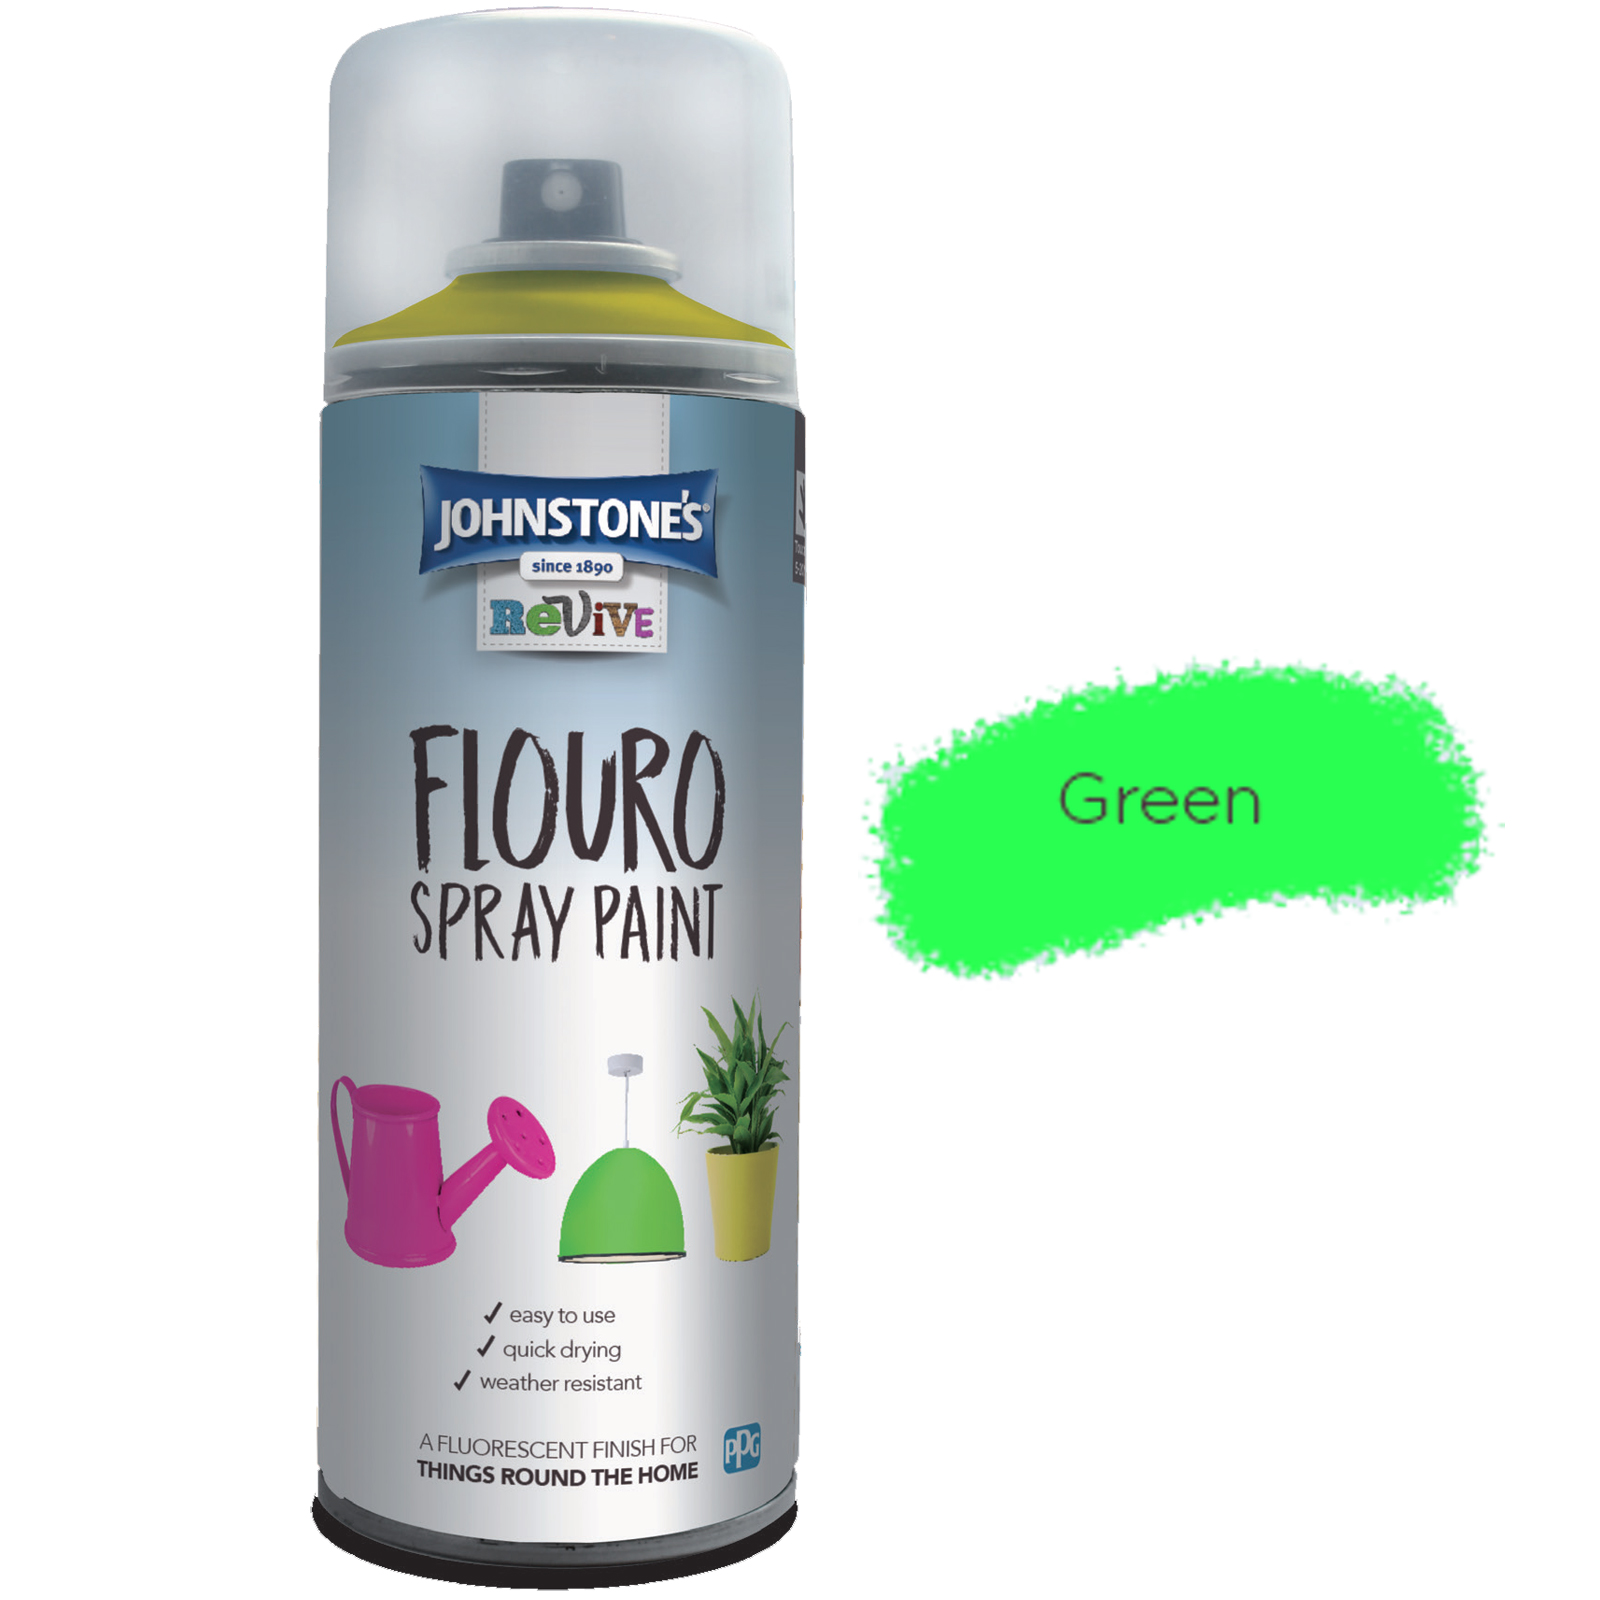 FLOURO SPRAY PAINT GREEN